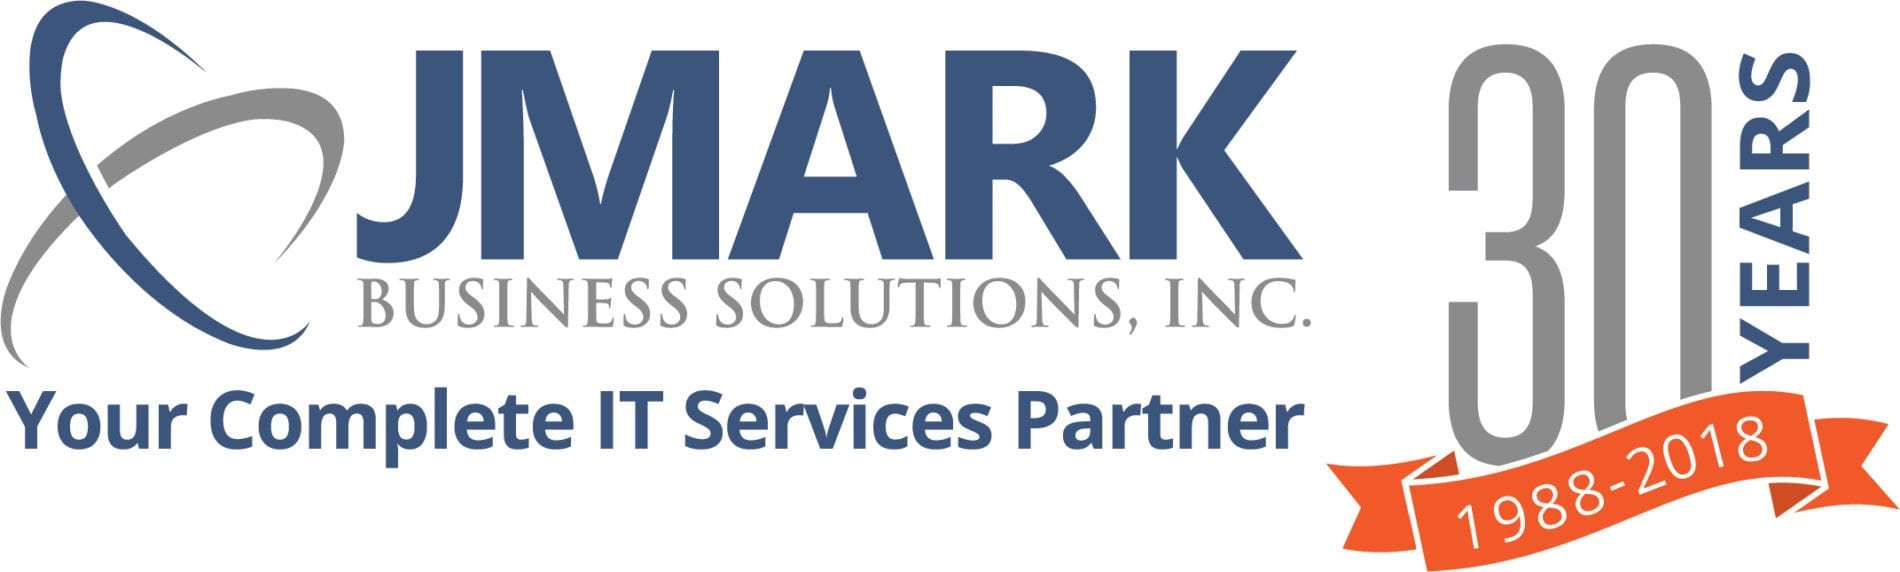 Manufacturing Leader should be at the JMARK Business Innovation Technology Summit